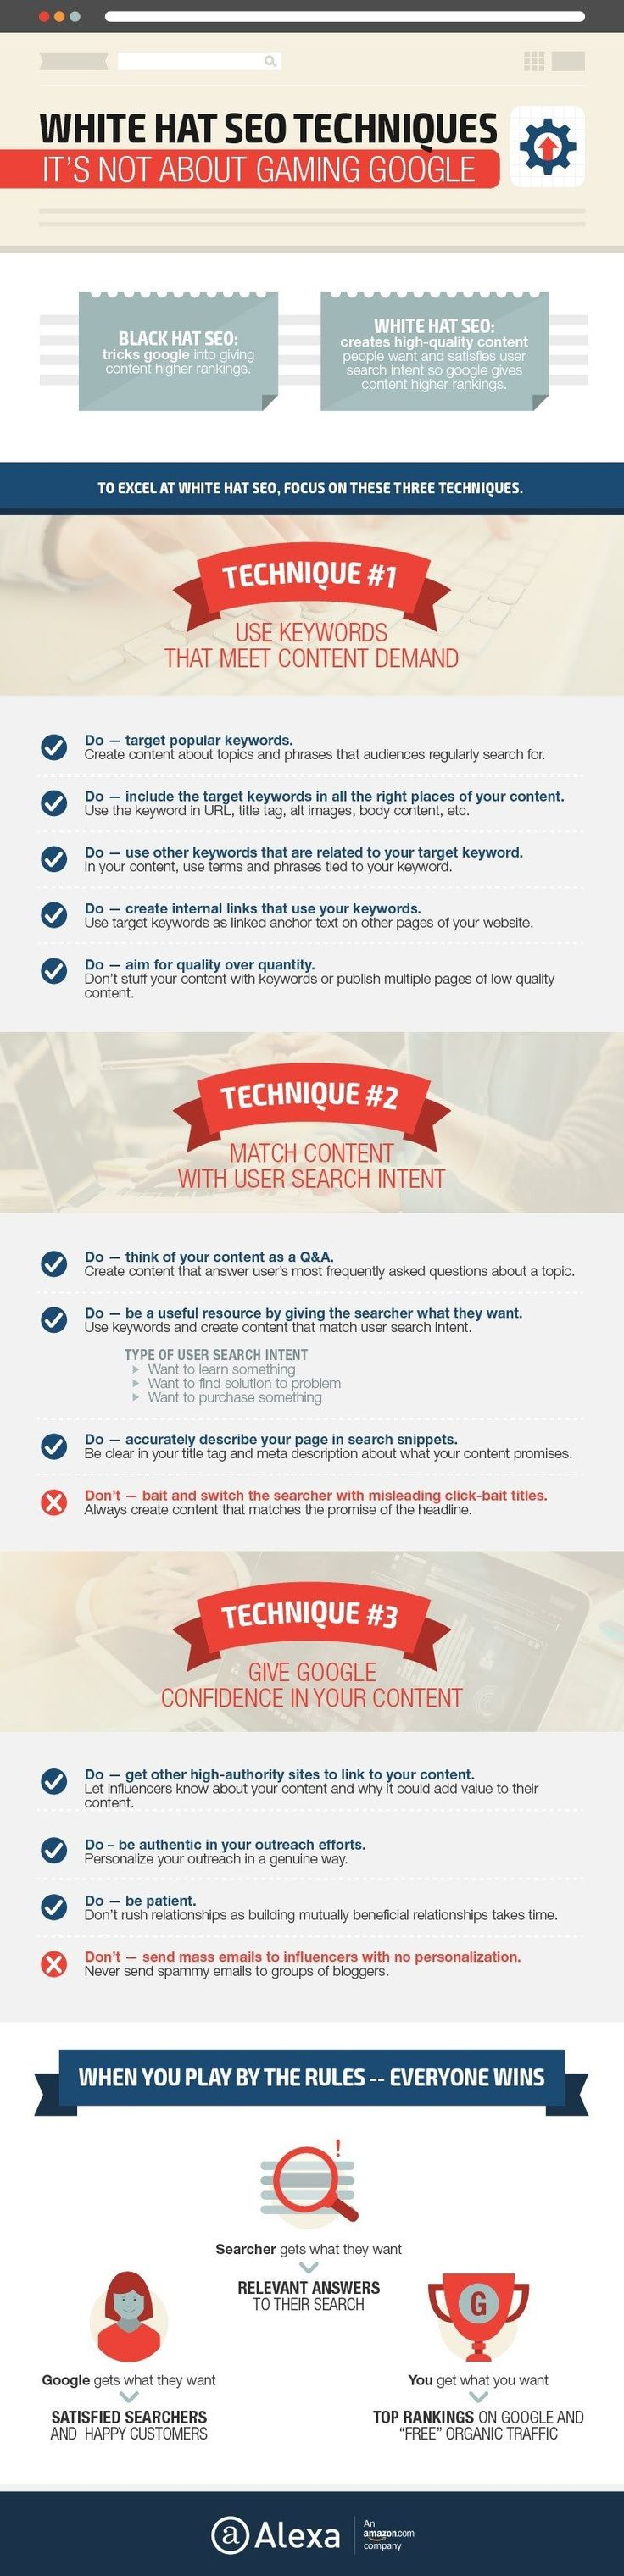 Want Higher Website Rankings? 11 SEO Techniques Recommended by Google [Infographic] | Social Media Today